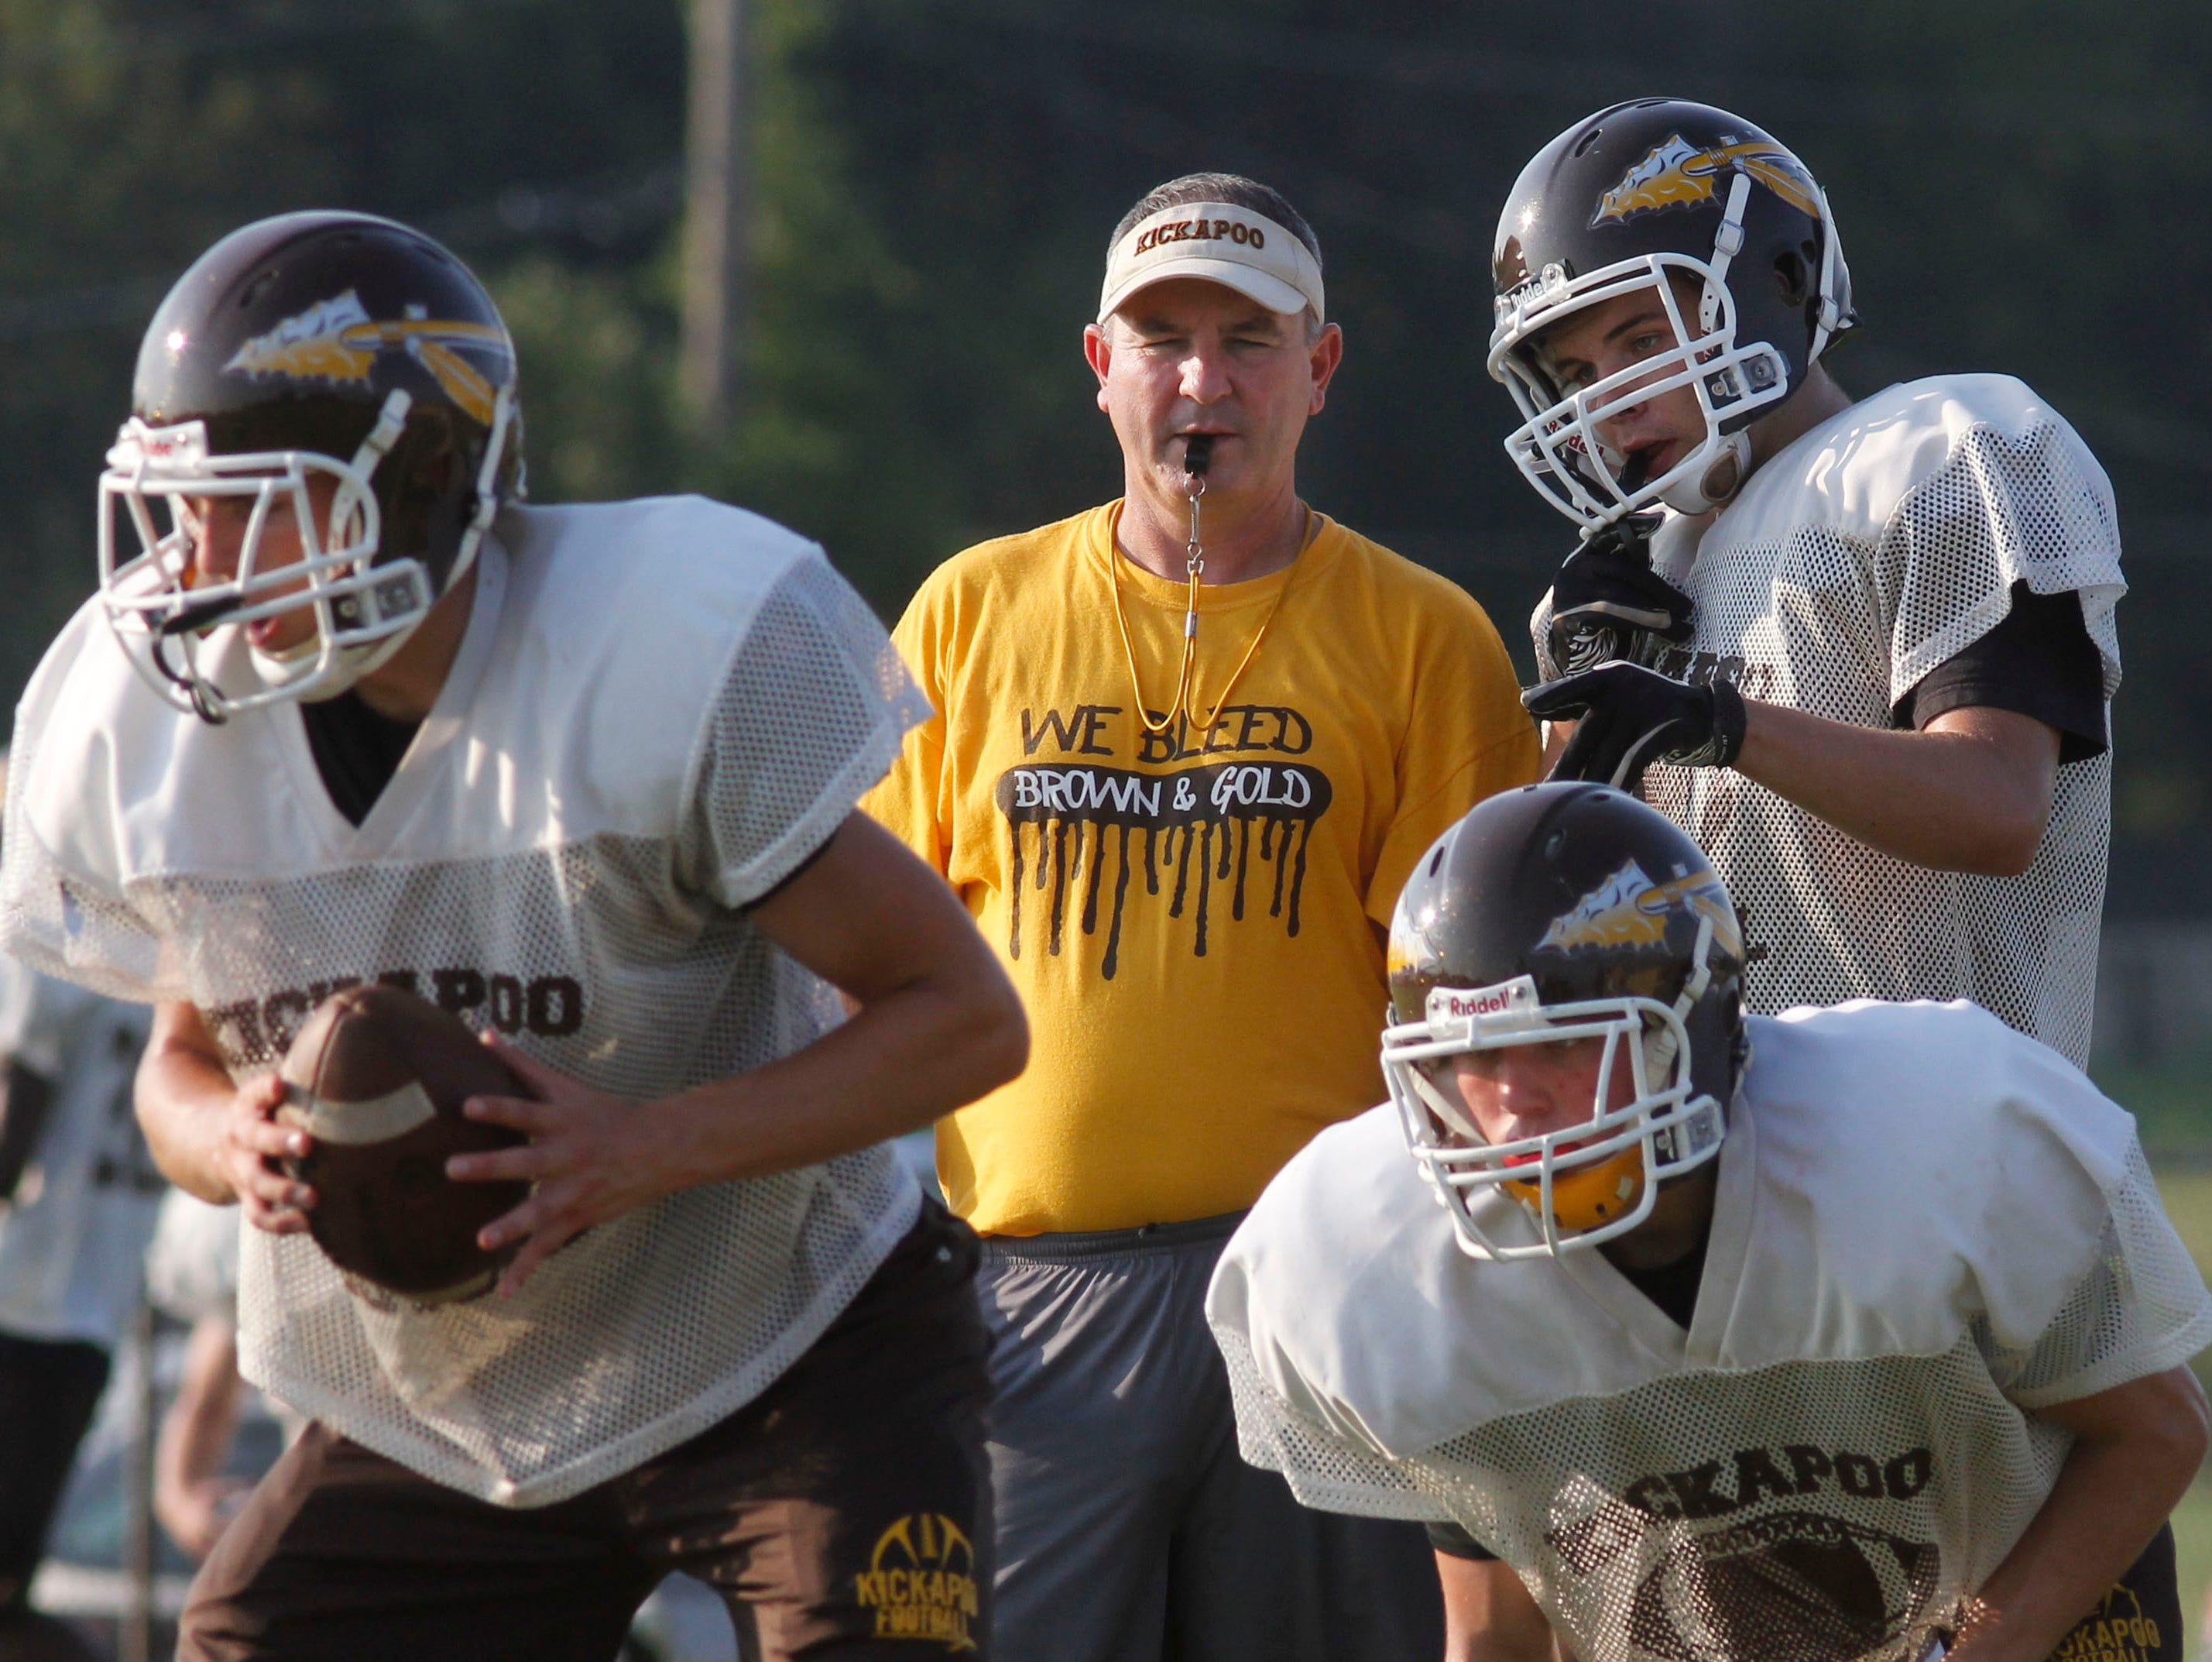 Kickapoo's Joel Wells takes a business-like approach into the pre-game speeches to his team.